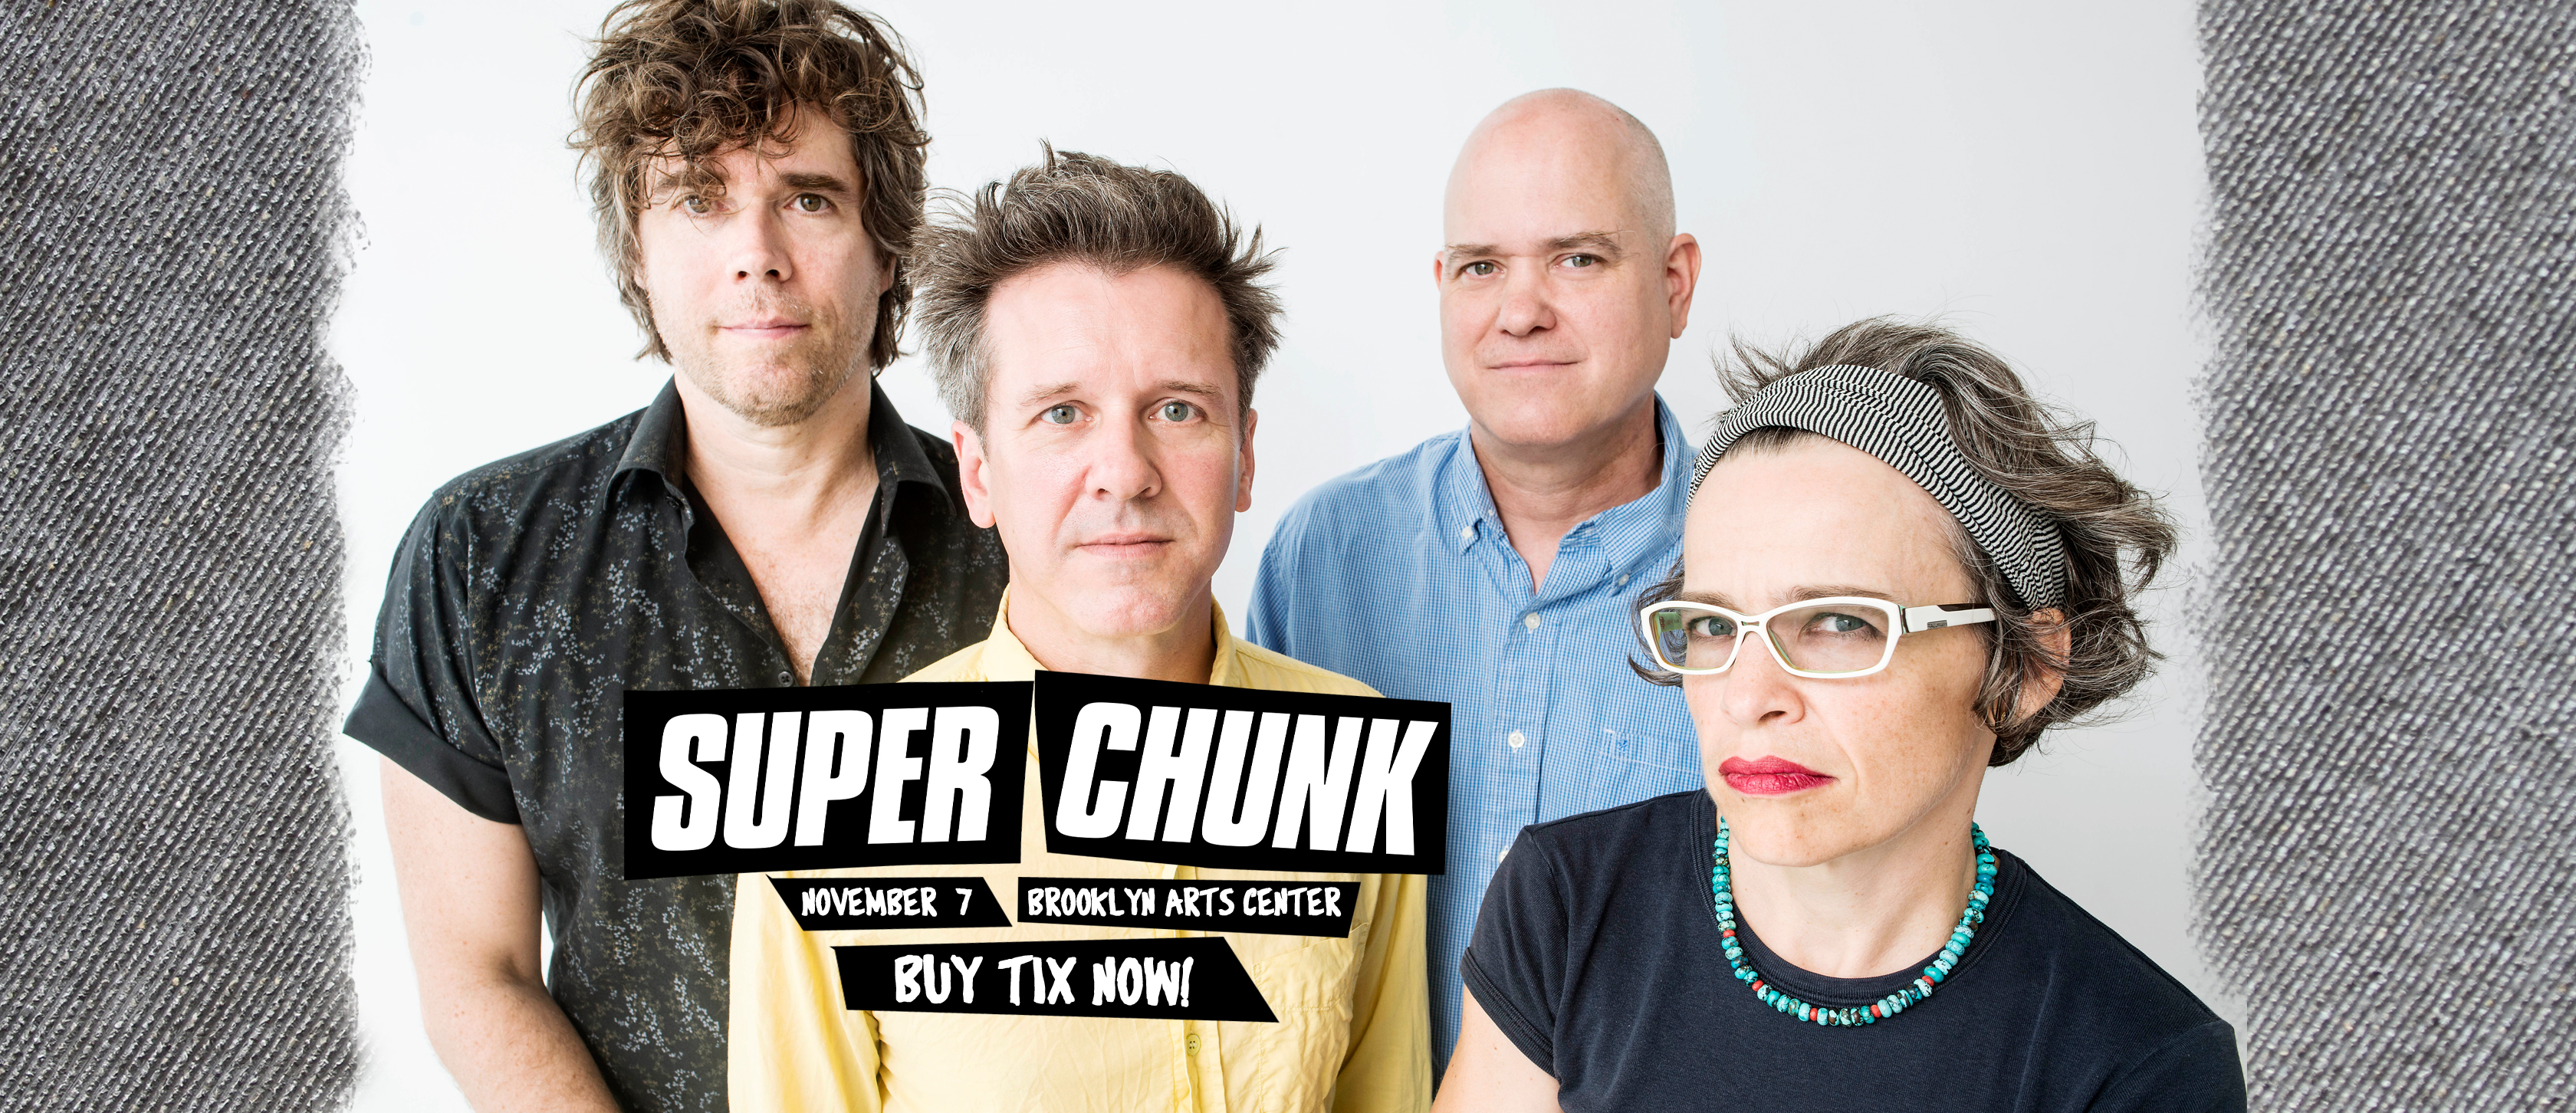 Superchunk to open the 24th Annual Cucalorus Festival, tix on sale now!